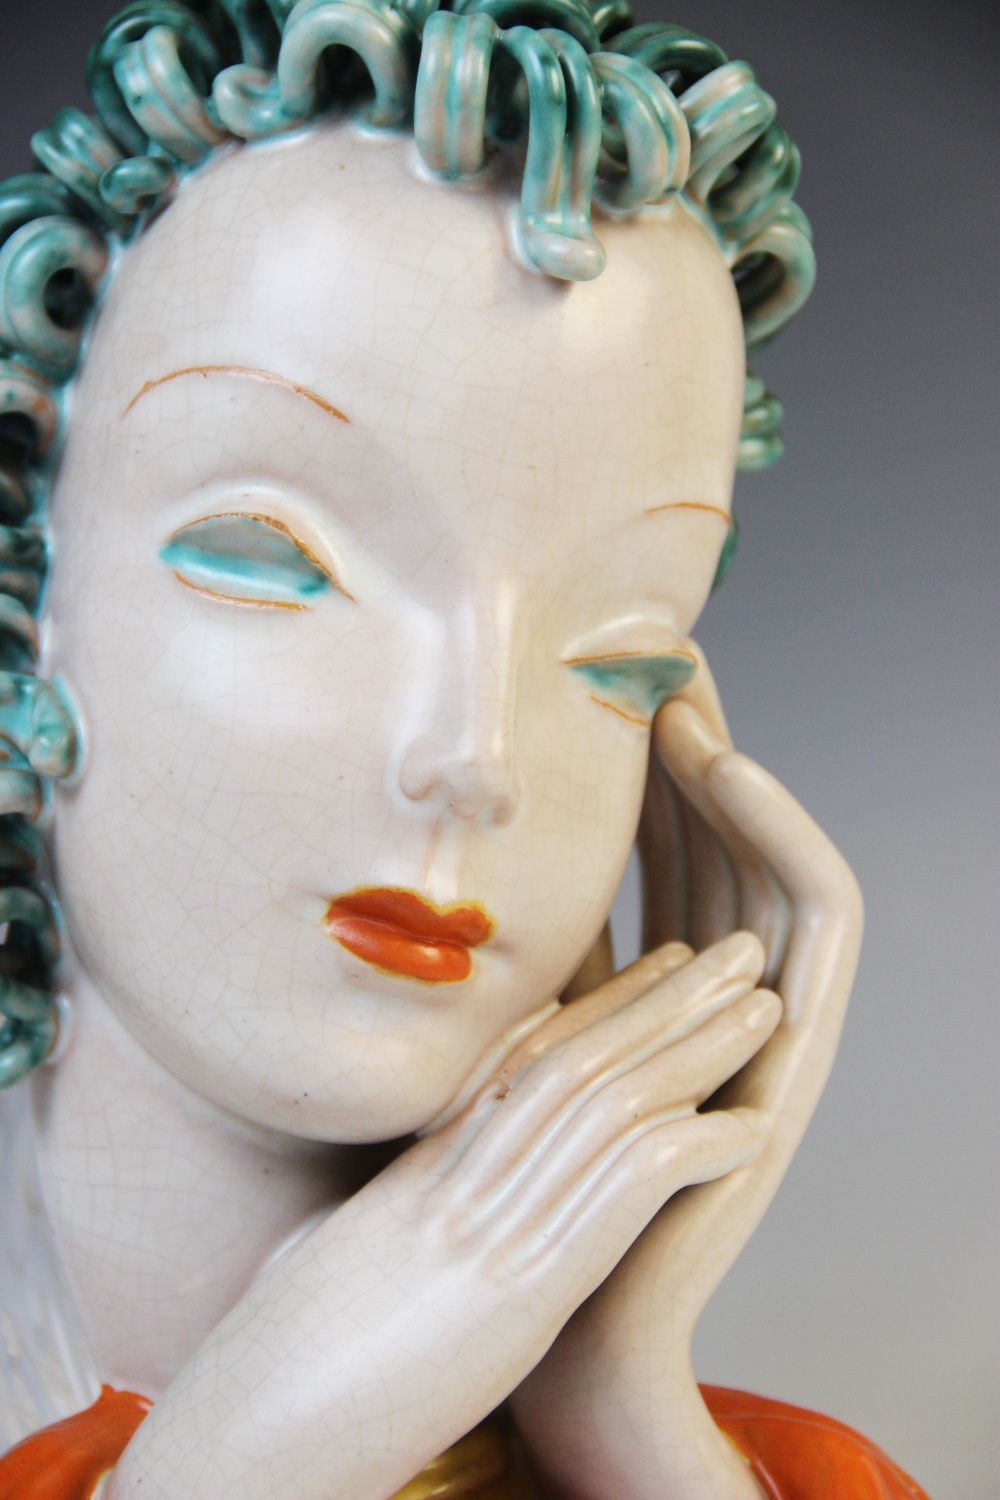 An Art Deco Goldscheider wall mask, early 20th century, modelled as a lady with blue curled hair and - Image 2 of 9